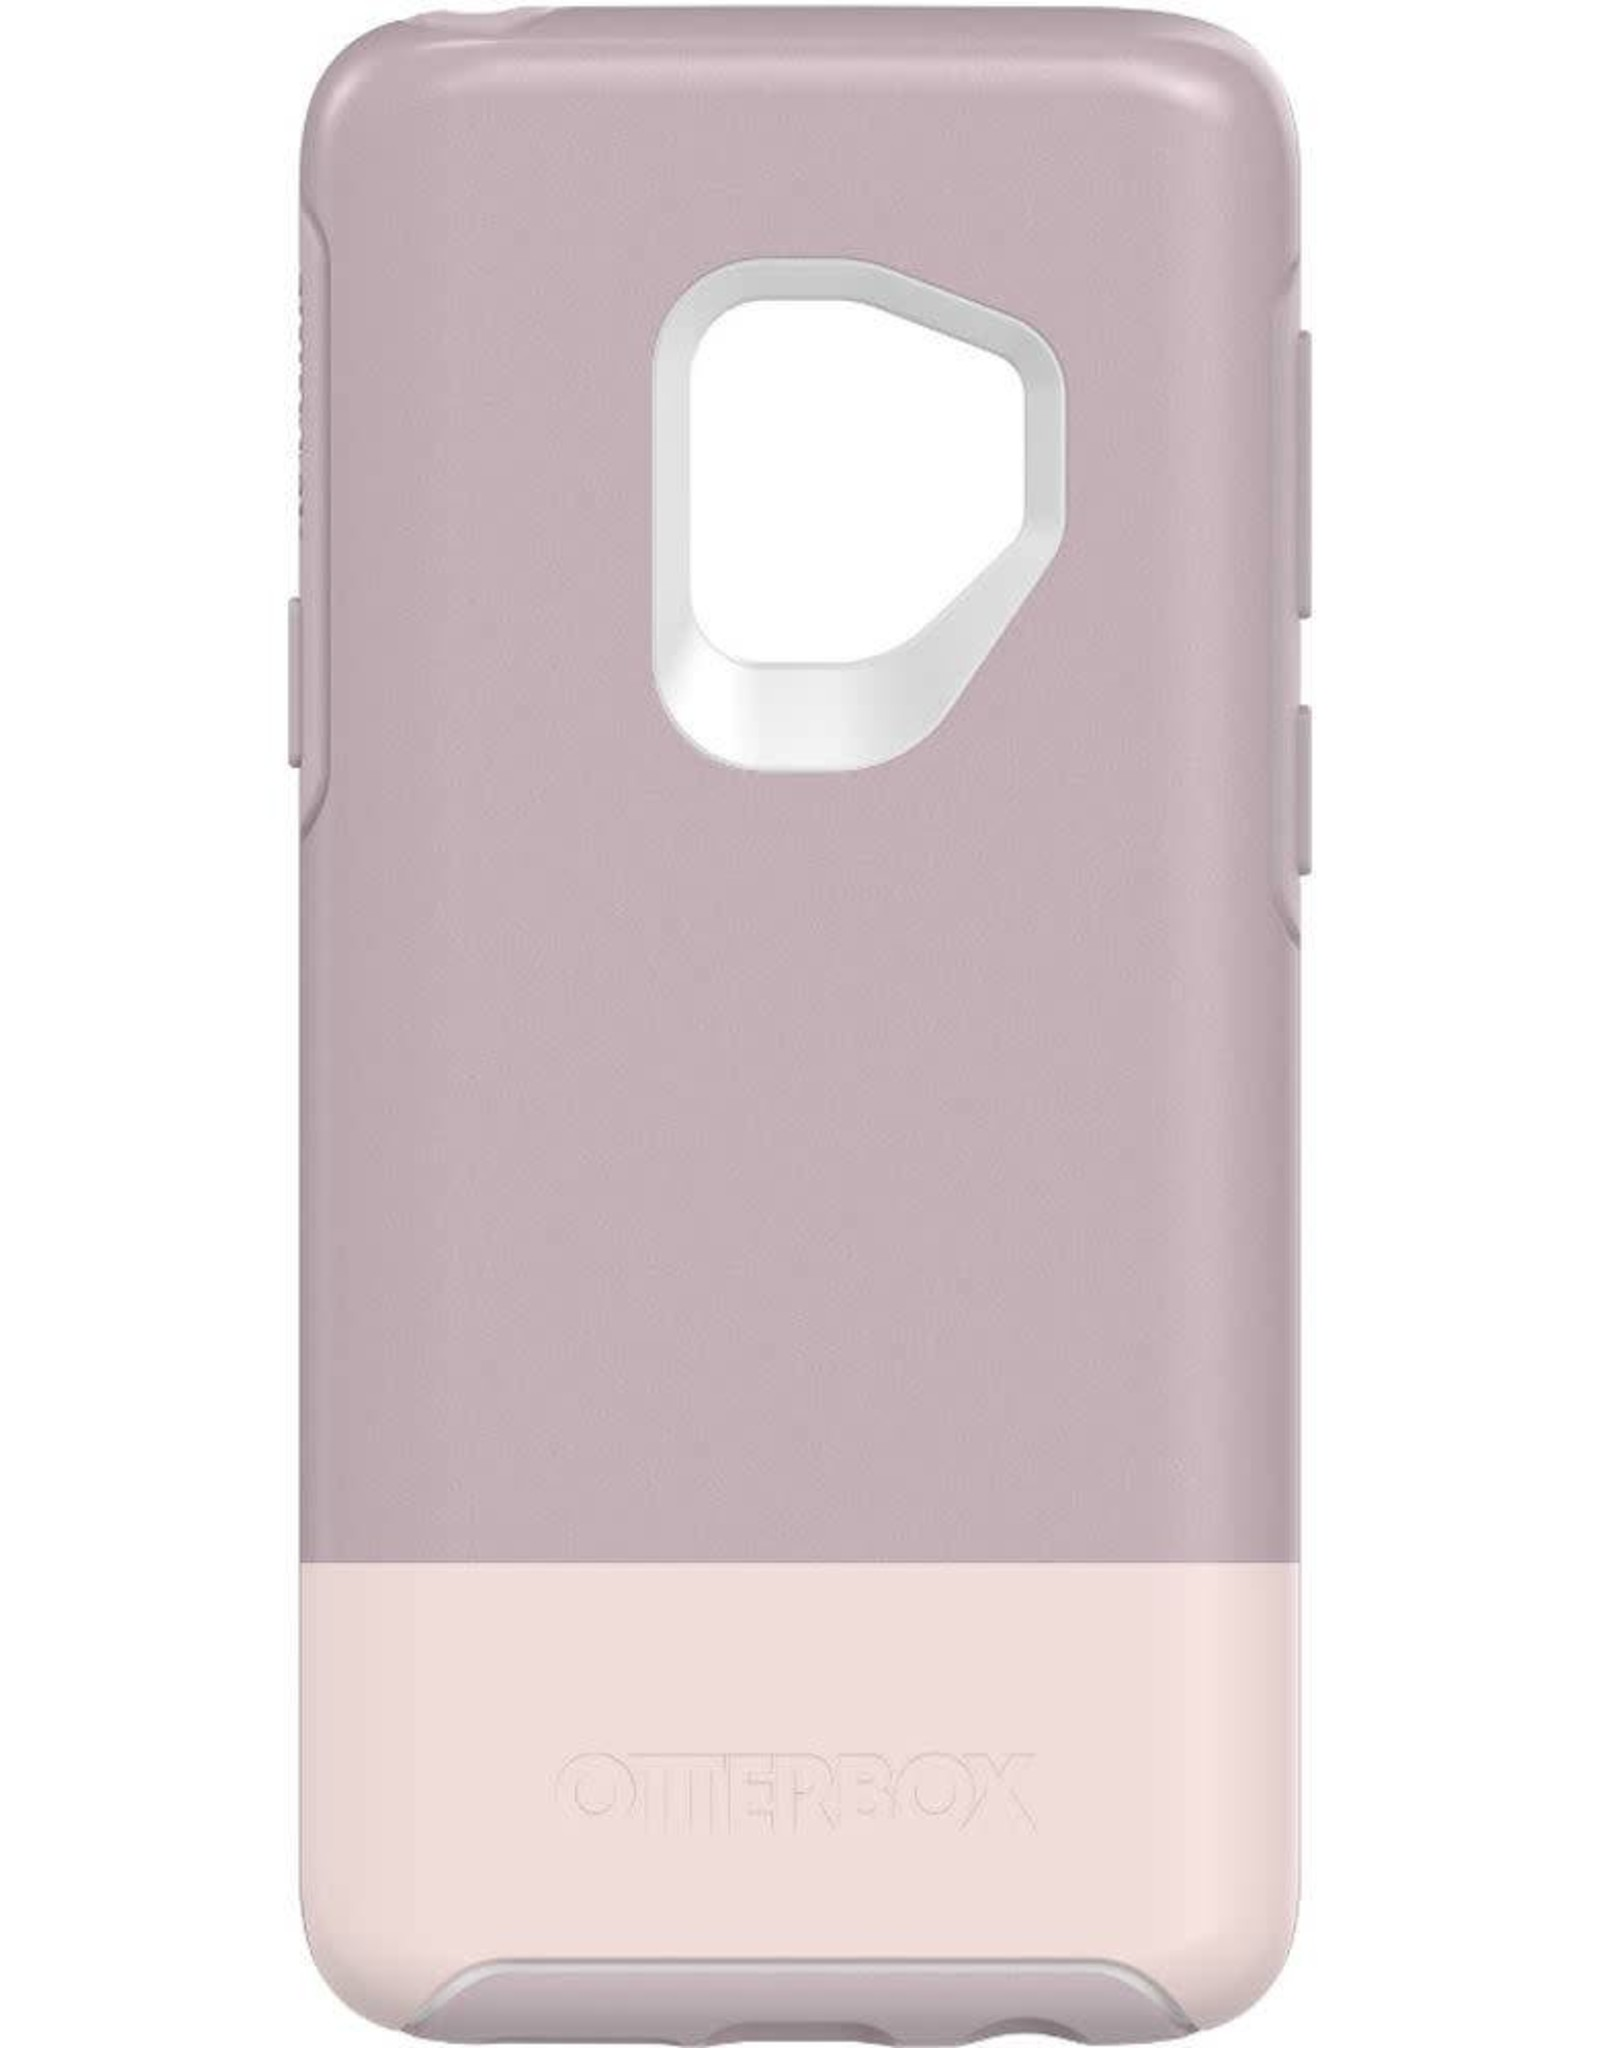 Otterbox OtterBox | Samsung Galaxy S9 Symmetry Skinny Dip (White/Mauve) | 120-0135